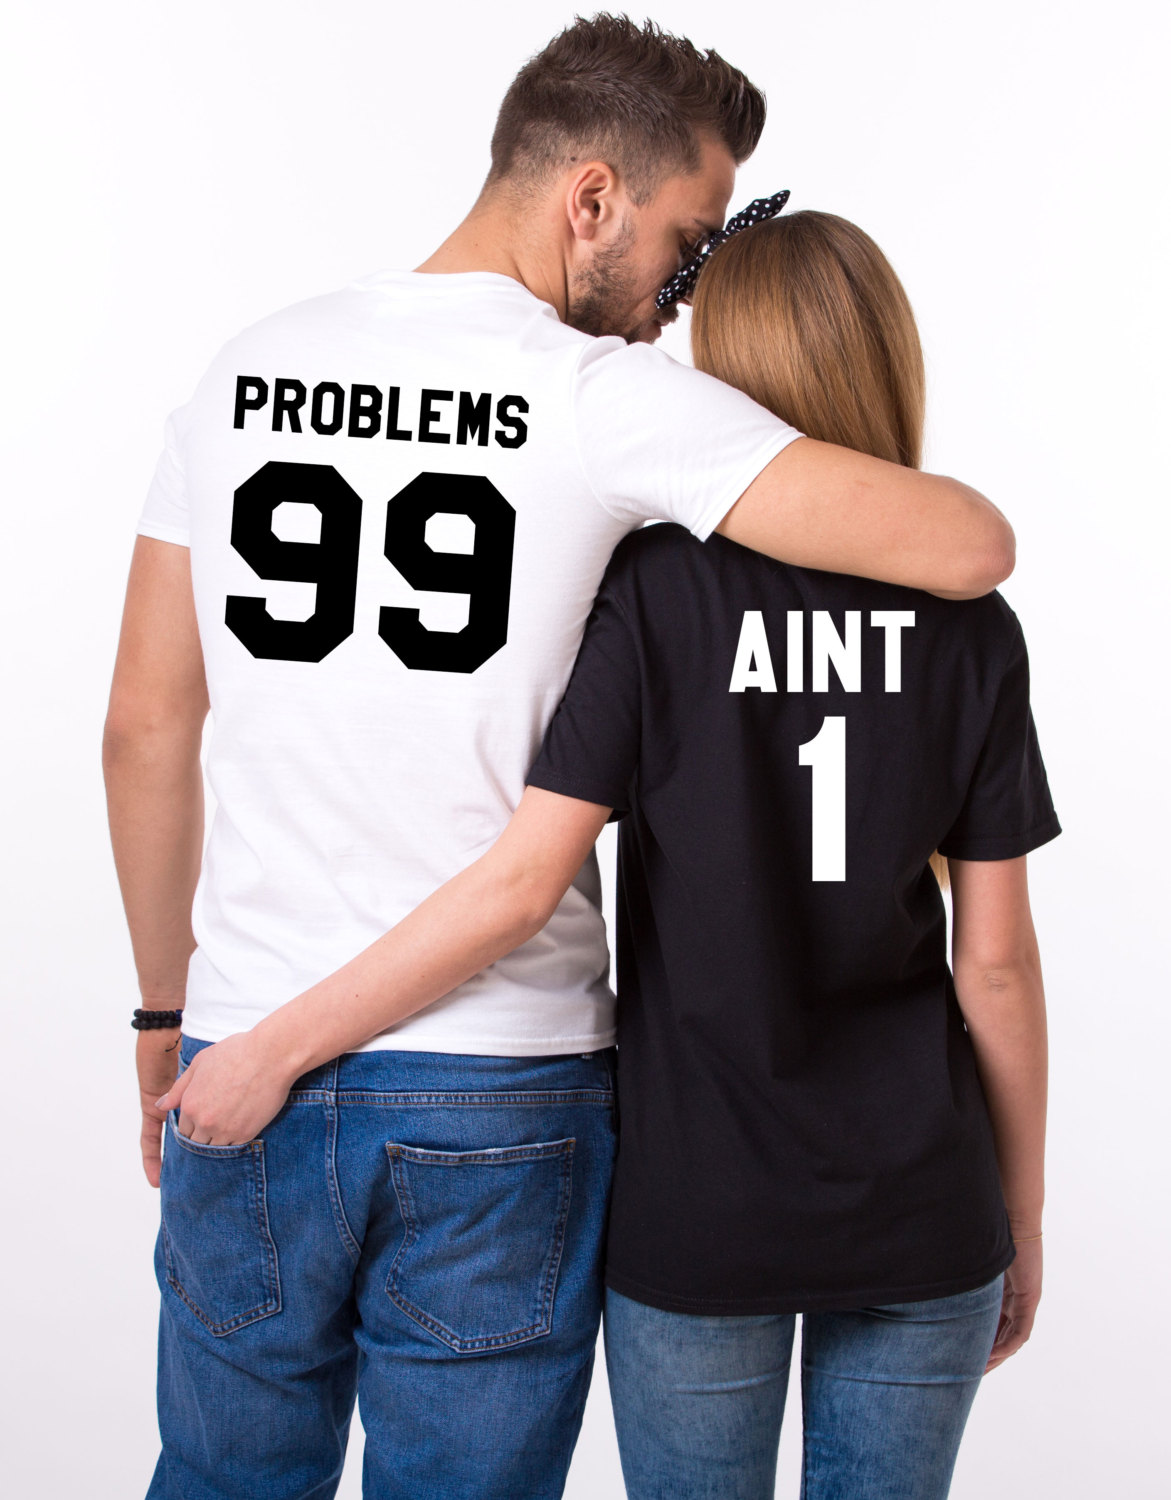 f6b75df6b8 Matching Shirts for Couples, 99 Problems Aint 1, Unisex